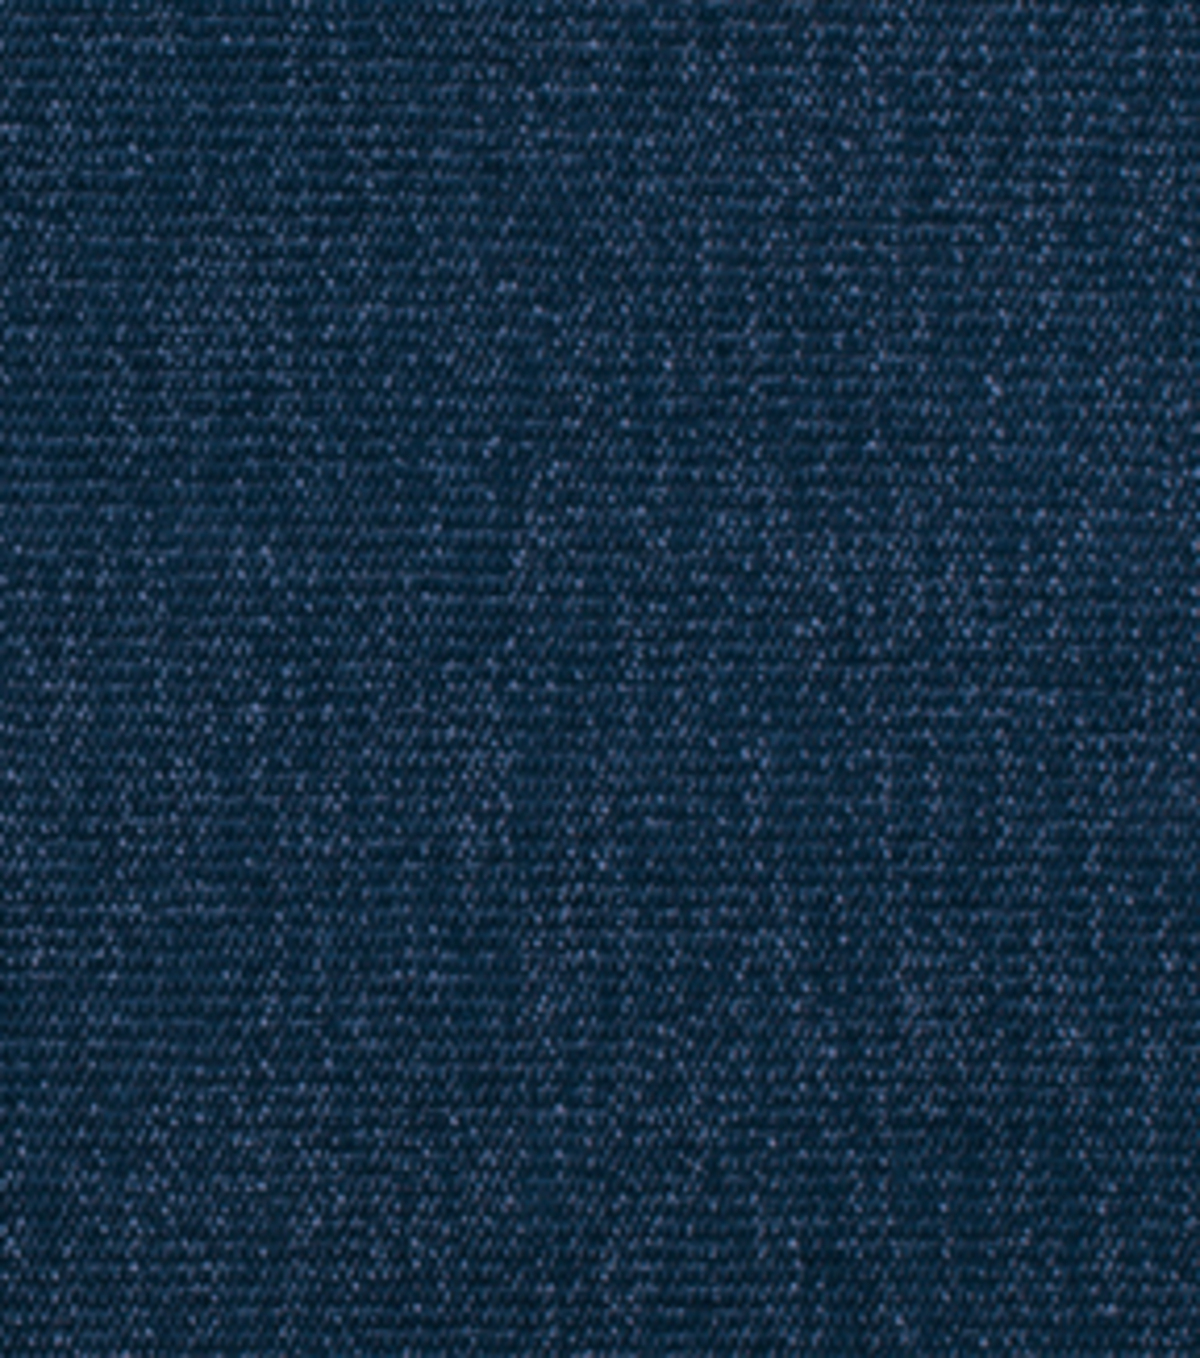 Home Decor 8\u0022x8\u0022 Fabric Swatch-Richloom Studio Hogan Cobalt